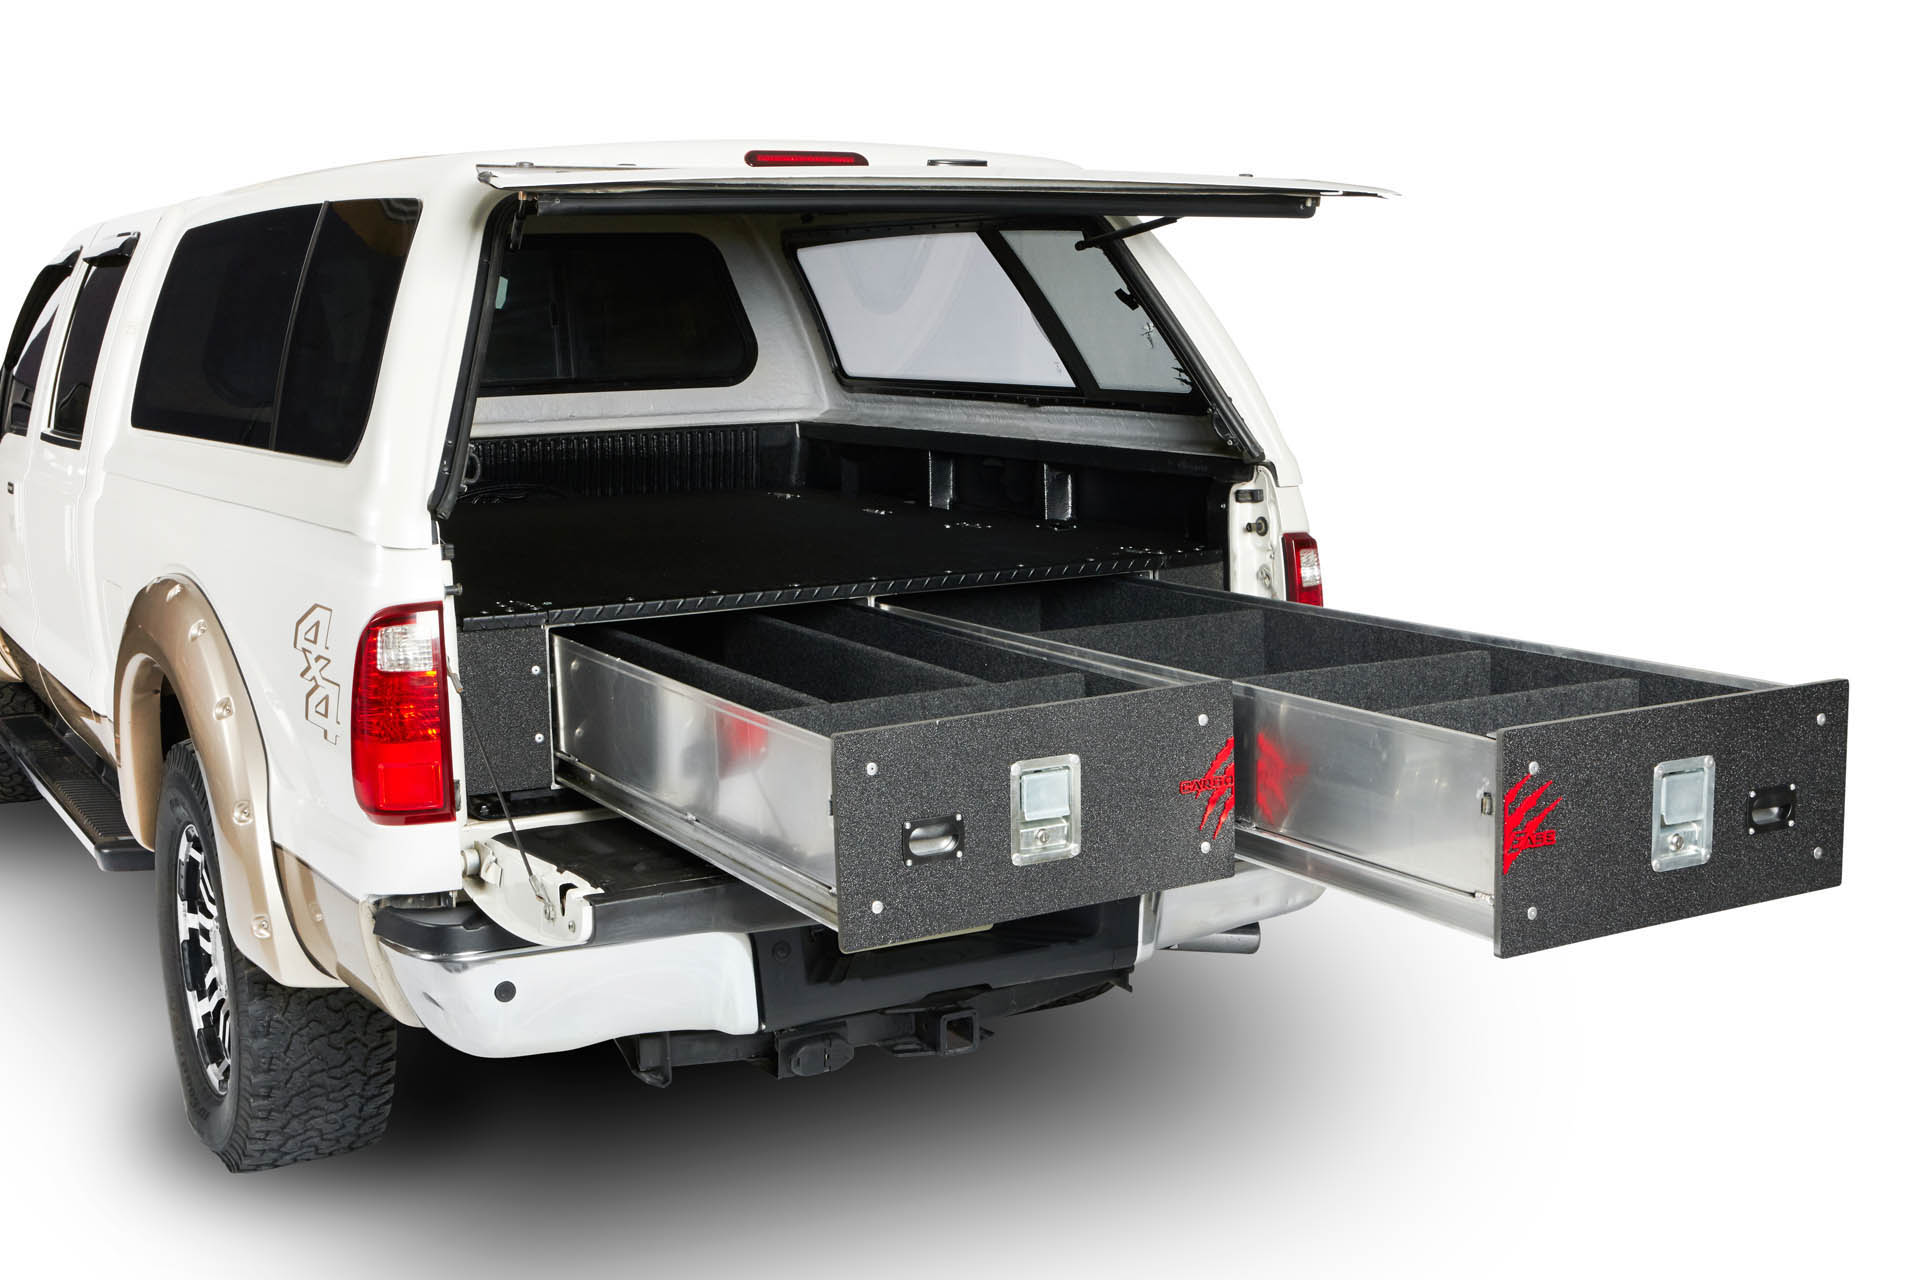 Truck and Van Storage Makes Use of Every Inch  sc 1 st  Remodeling Magazine & Tool Boxes and Storage | Remodeling